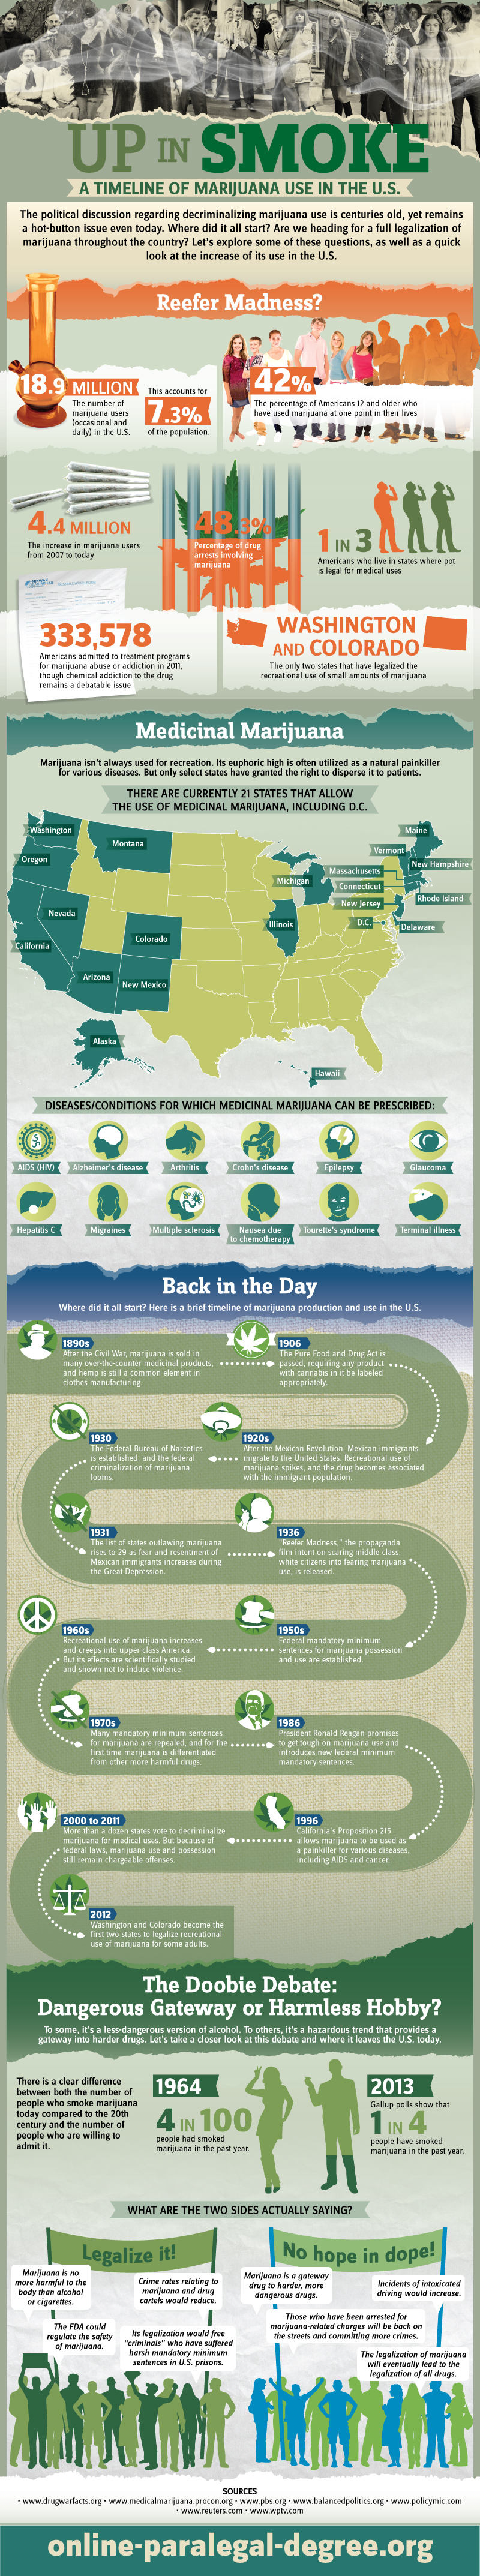 A Timeline of Marijuana Use in the U.S.